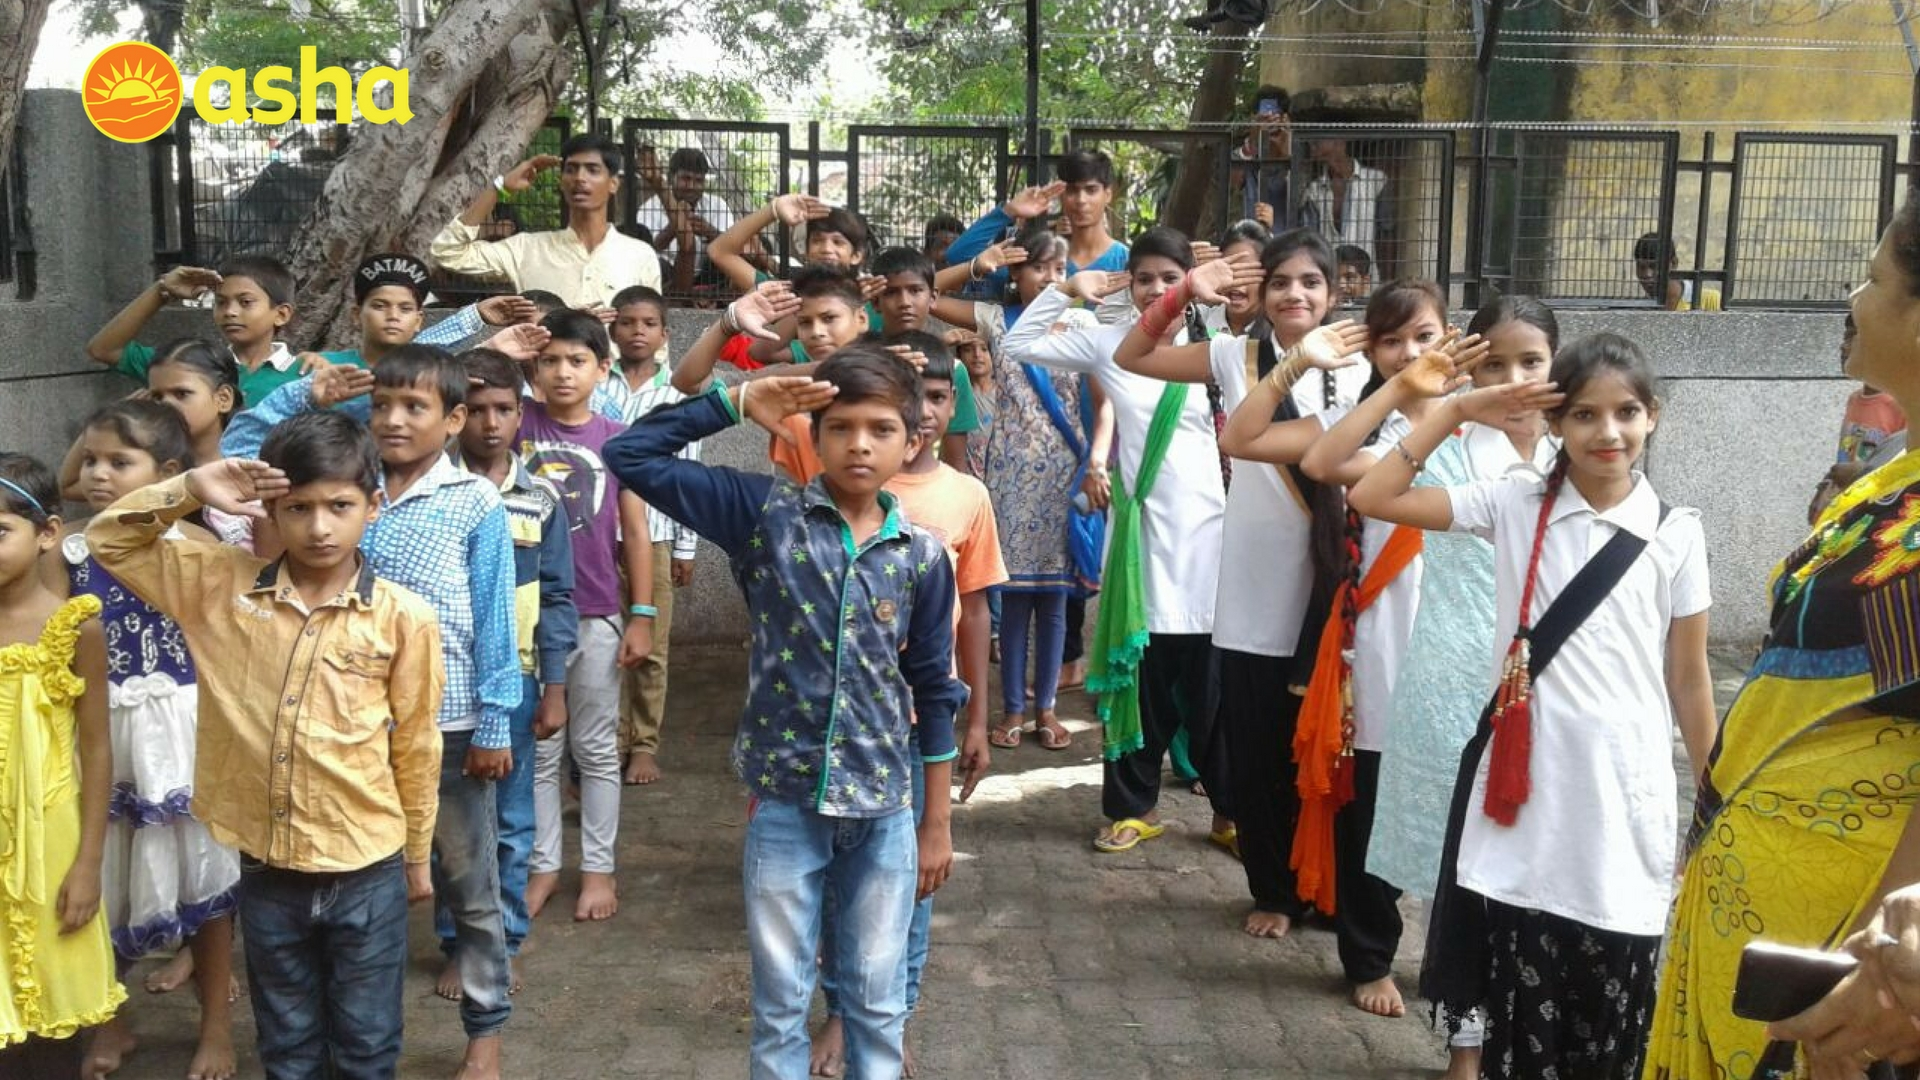 Asha students saluting with pride at Jeewan Nagar.